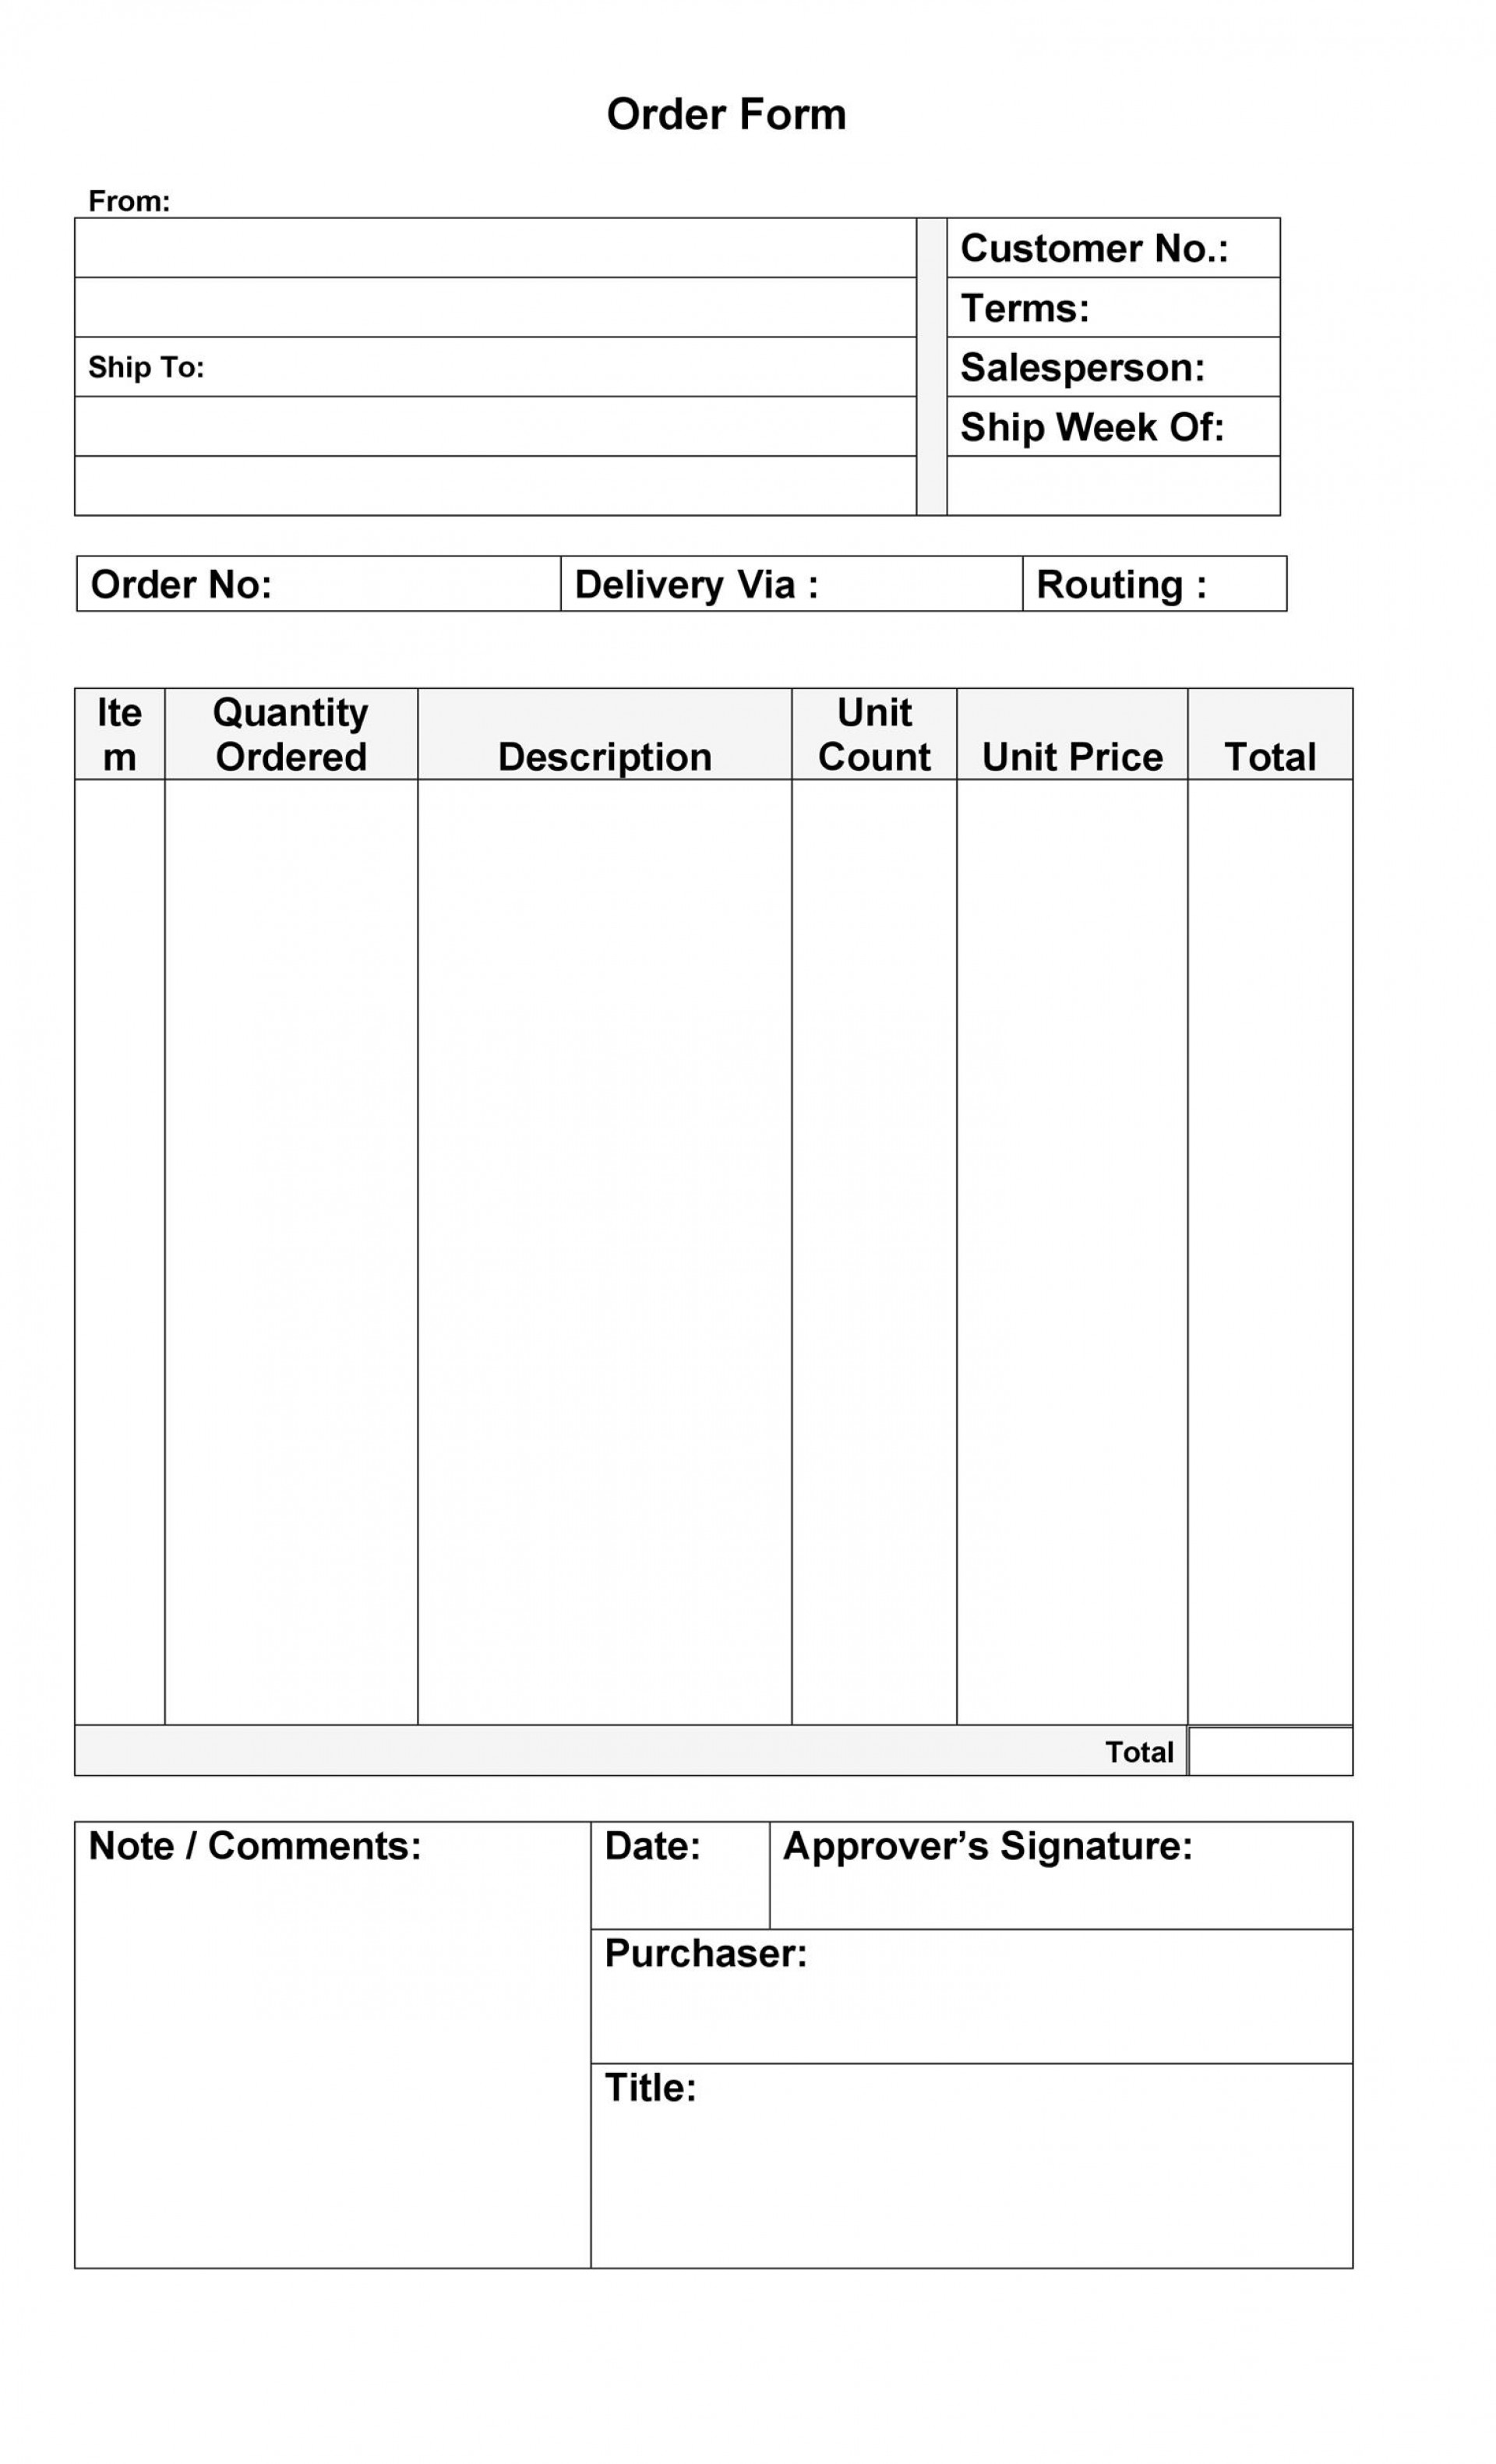 005 Marvelou Work Order Form Template Highest Clarity  Request Excel Advertising Company Free1920